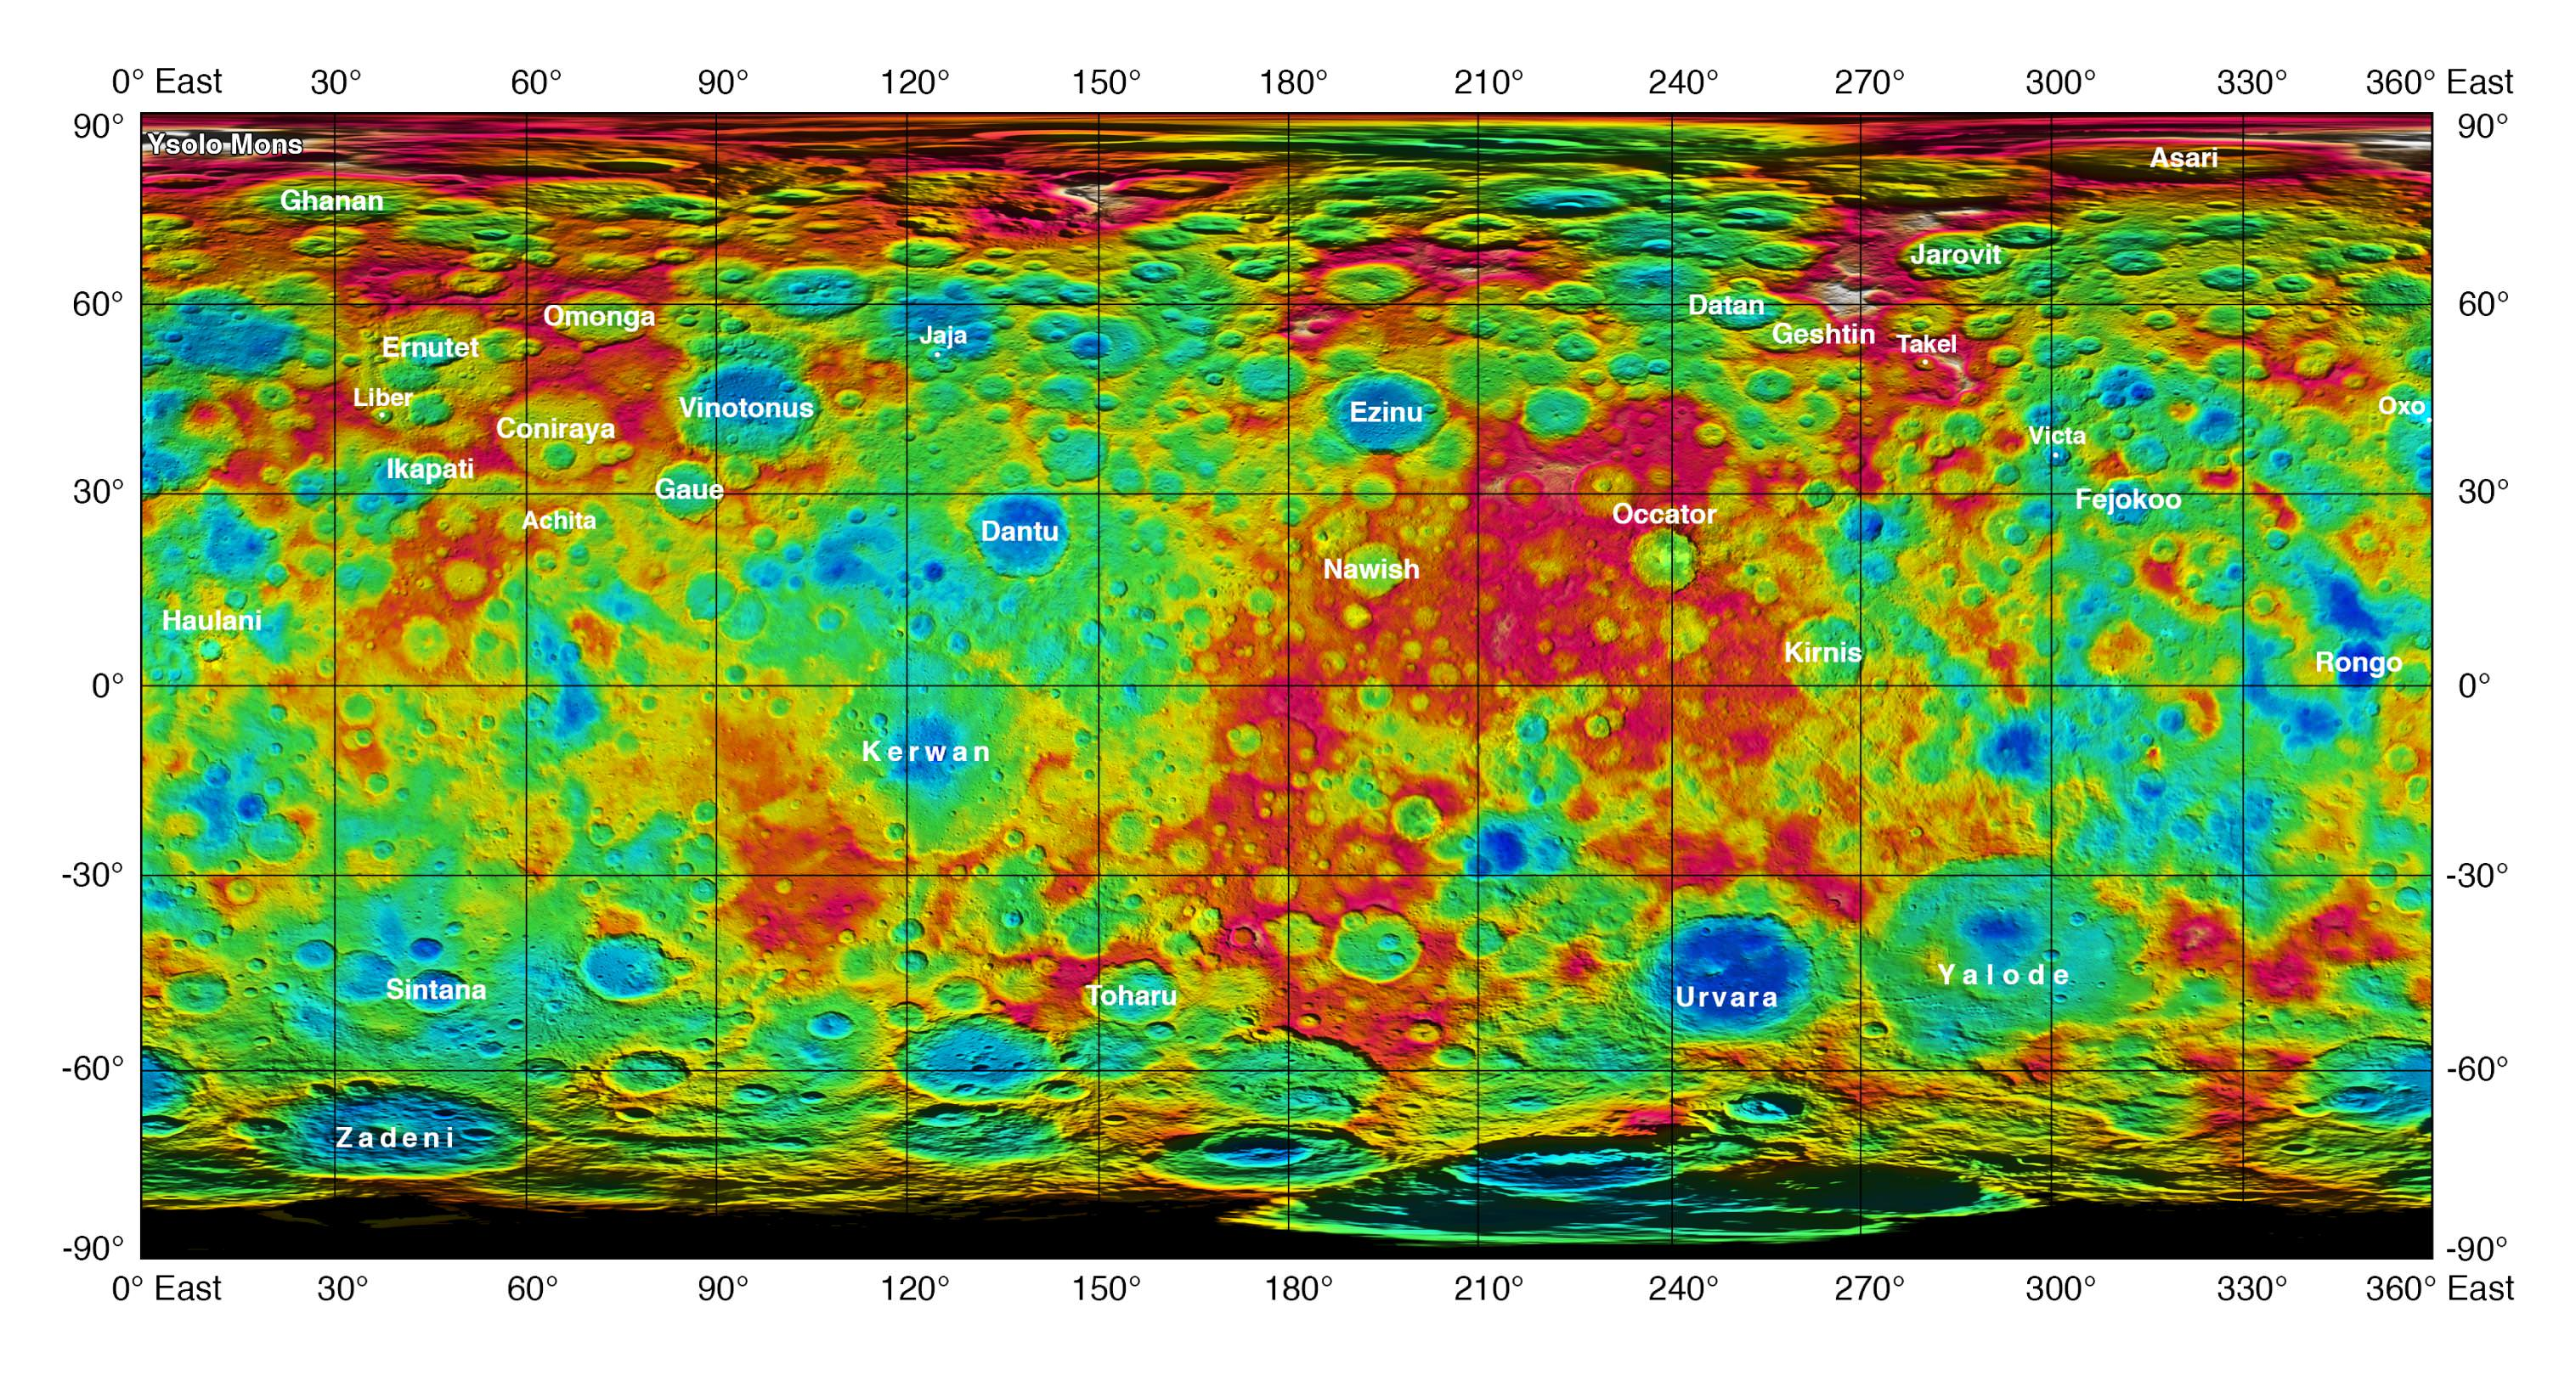 This color-coded map from NASA's Dawn shows the highs and lows of topography on the surface of dwarf planet Ceres. It is labeled with names of features approved by the International Astronomical Union. The color scale extends about 5 miles (7.5 kilometers) below the reference surface in indigo to 5 miles (7.5 kilometers) above the reference surface in white.  Credits: NASA/JPL-Caltech/UCLA/MPS/DLR/IDA